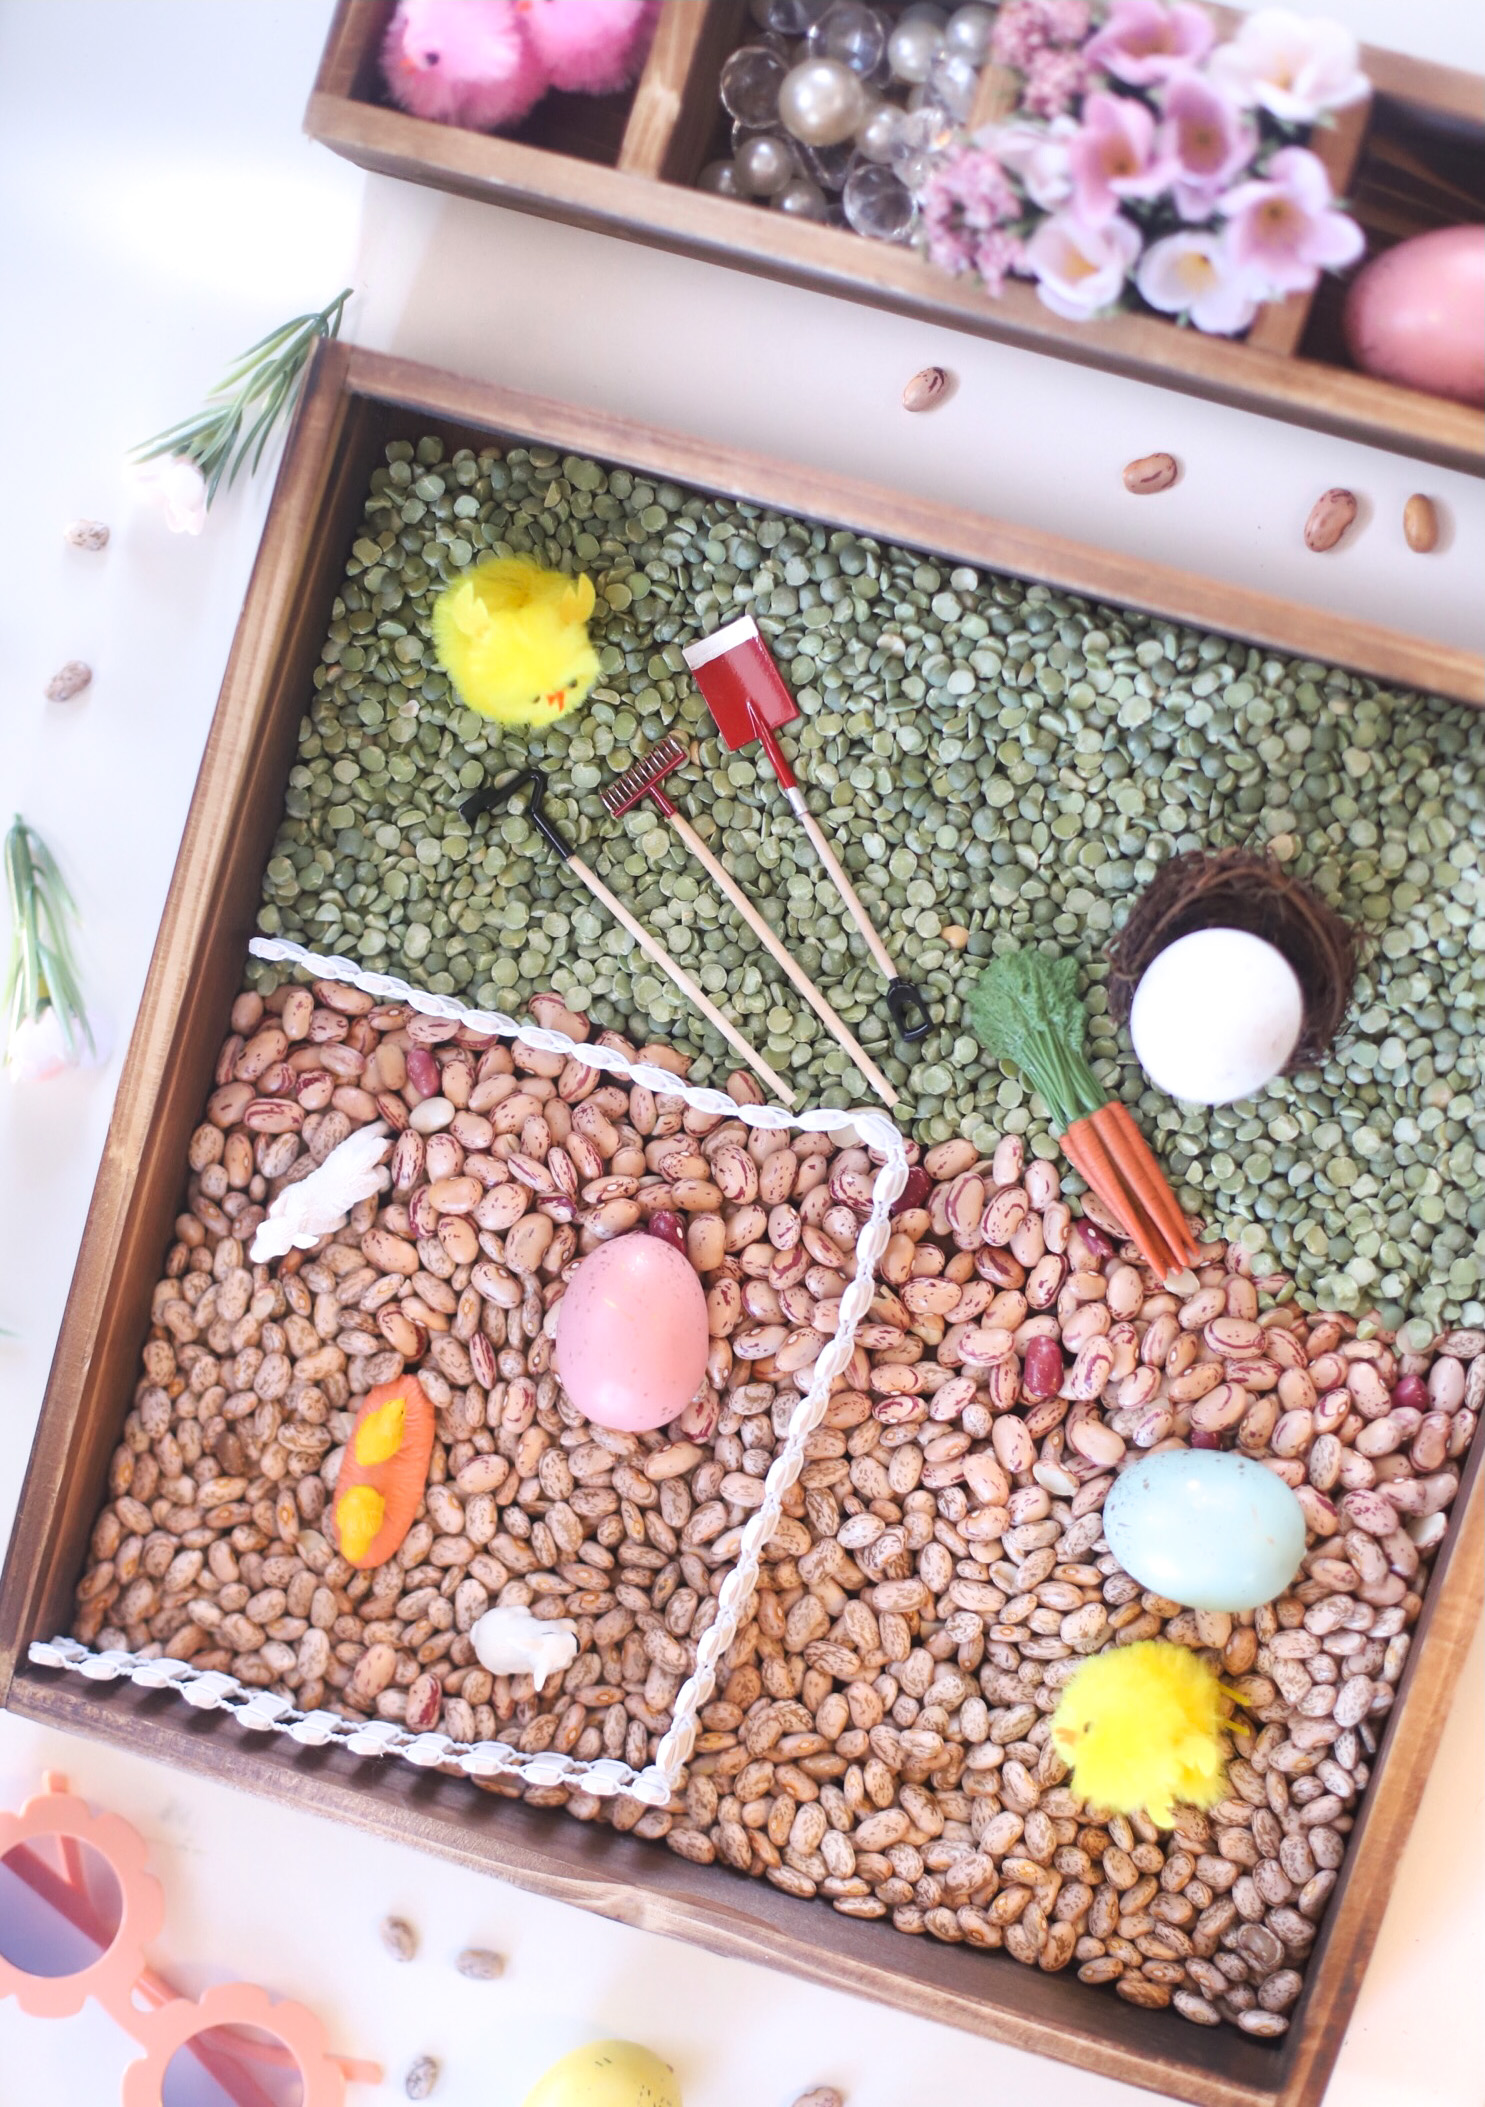 Farmhouse-Inspired Spring Sensory Bins for Kids - The Perfect Hands-On Activity for Toddlers and Beyond | @glitterinclexi | GLITTERINC.COM